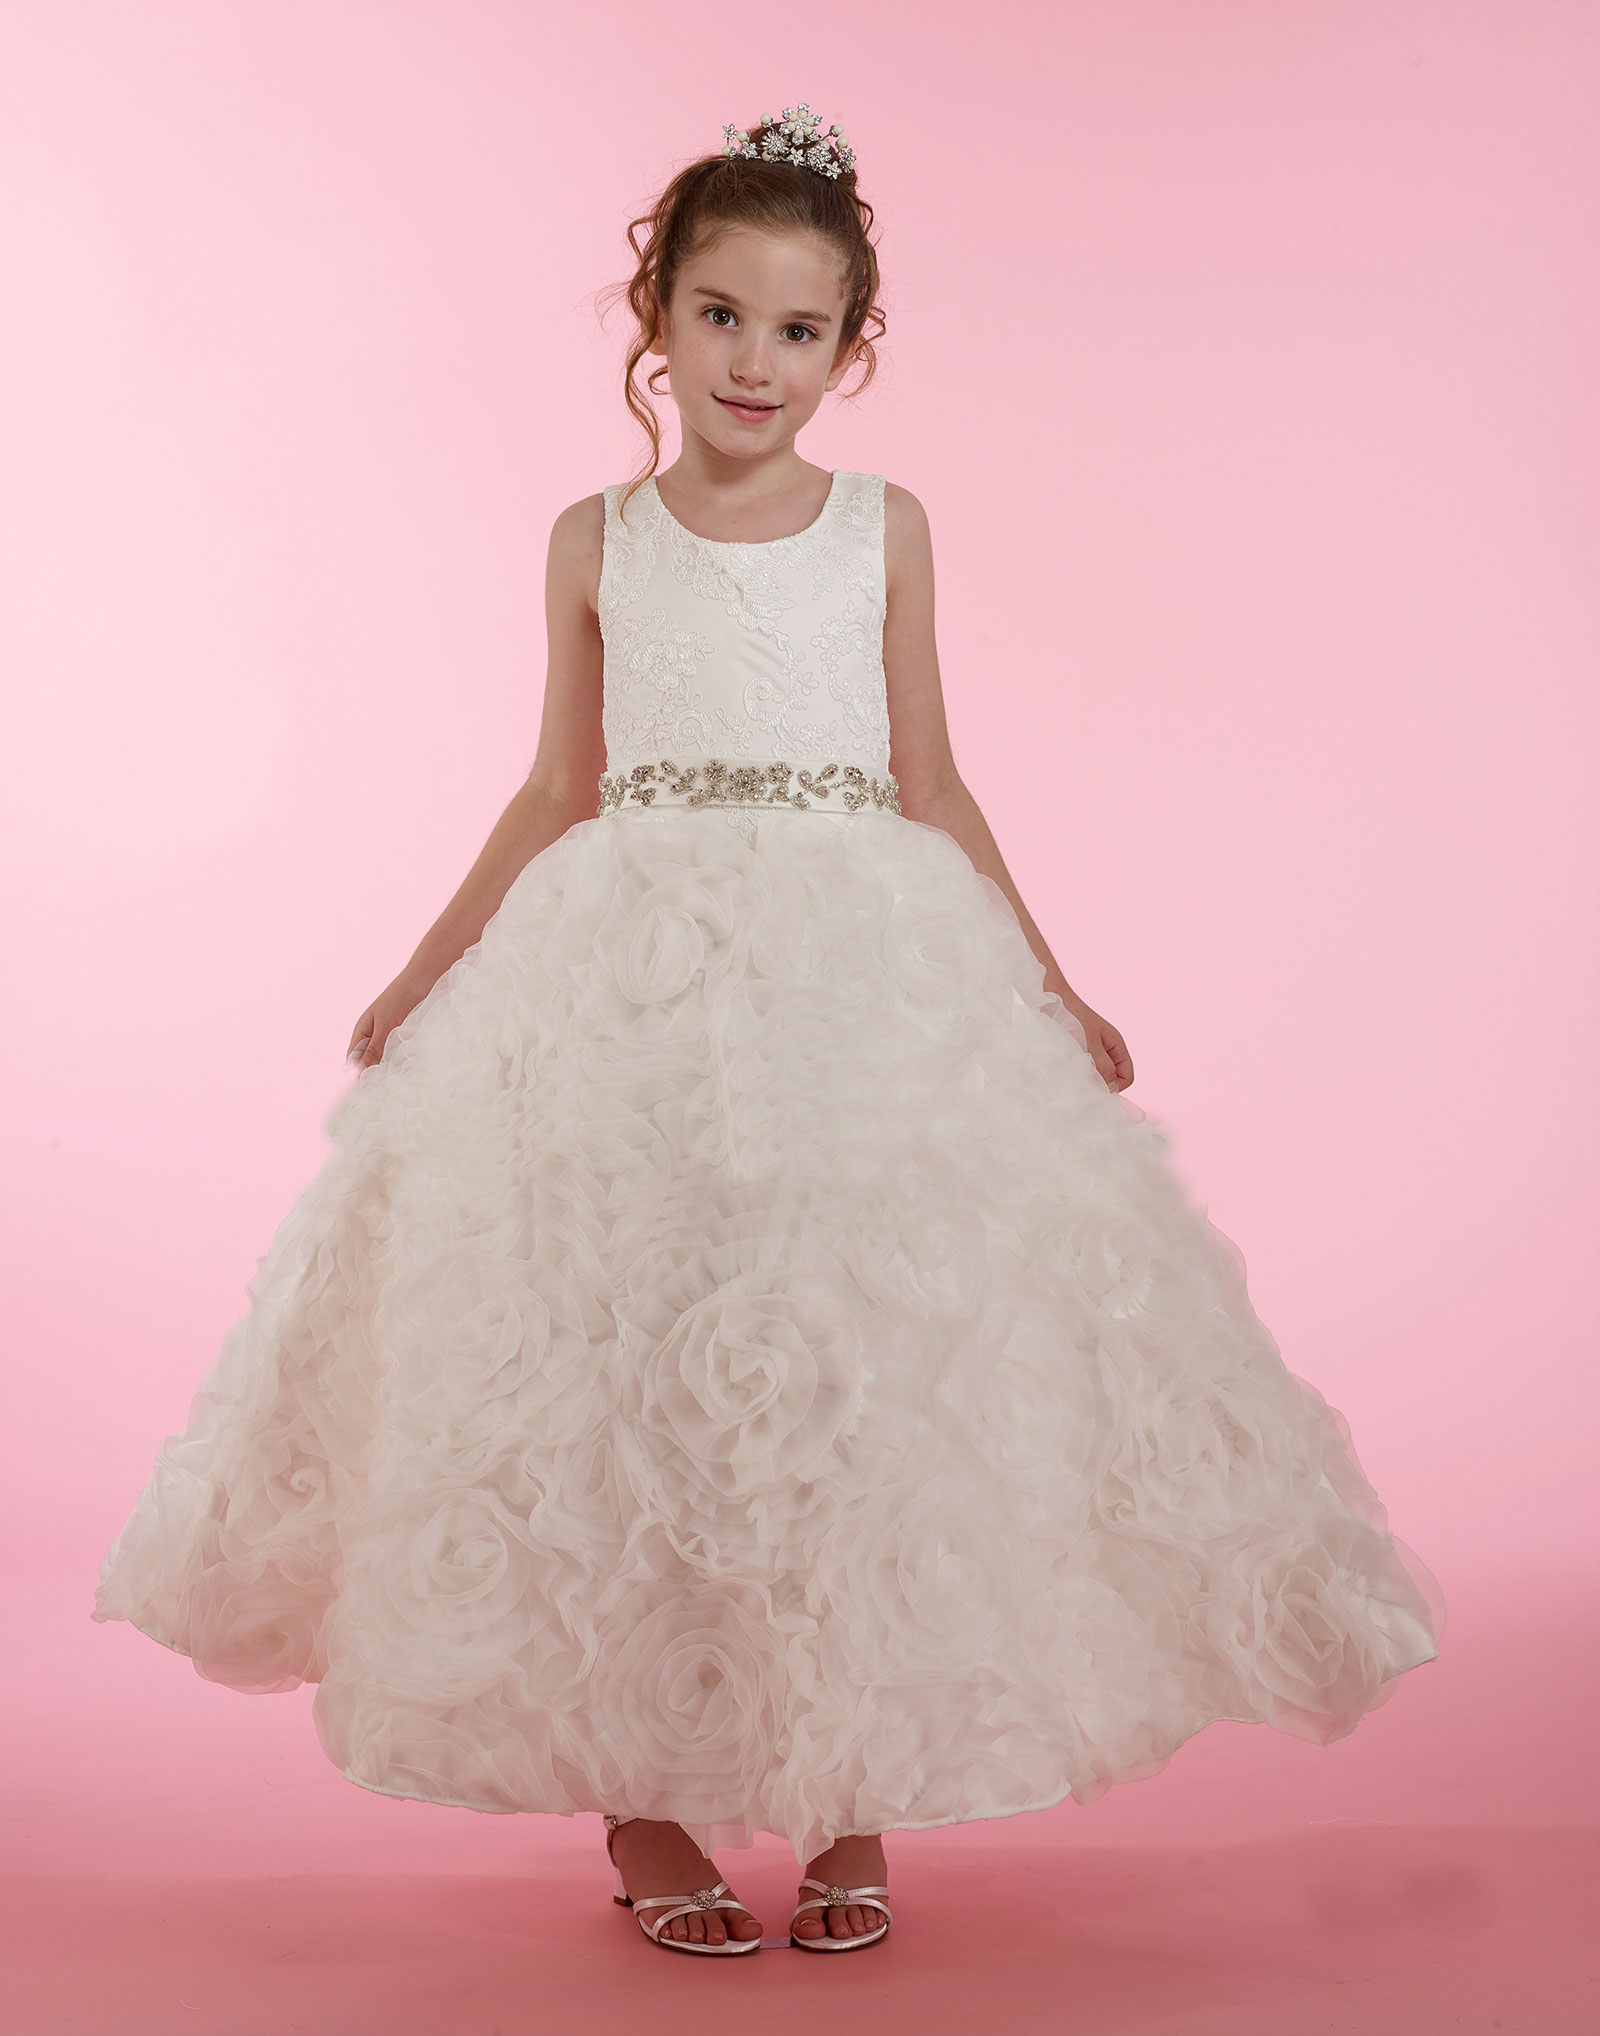 MD 1877 Couture Designer Girls Dress Style 1877 Embroidered Satin and Org